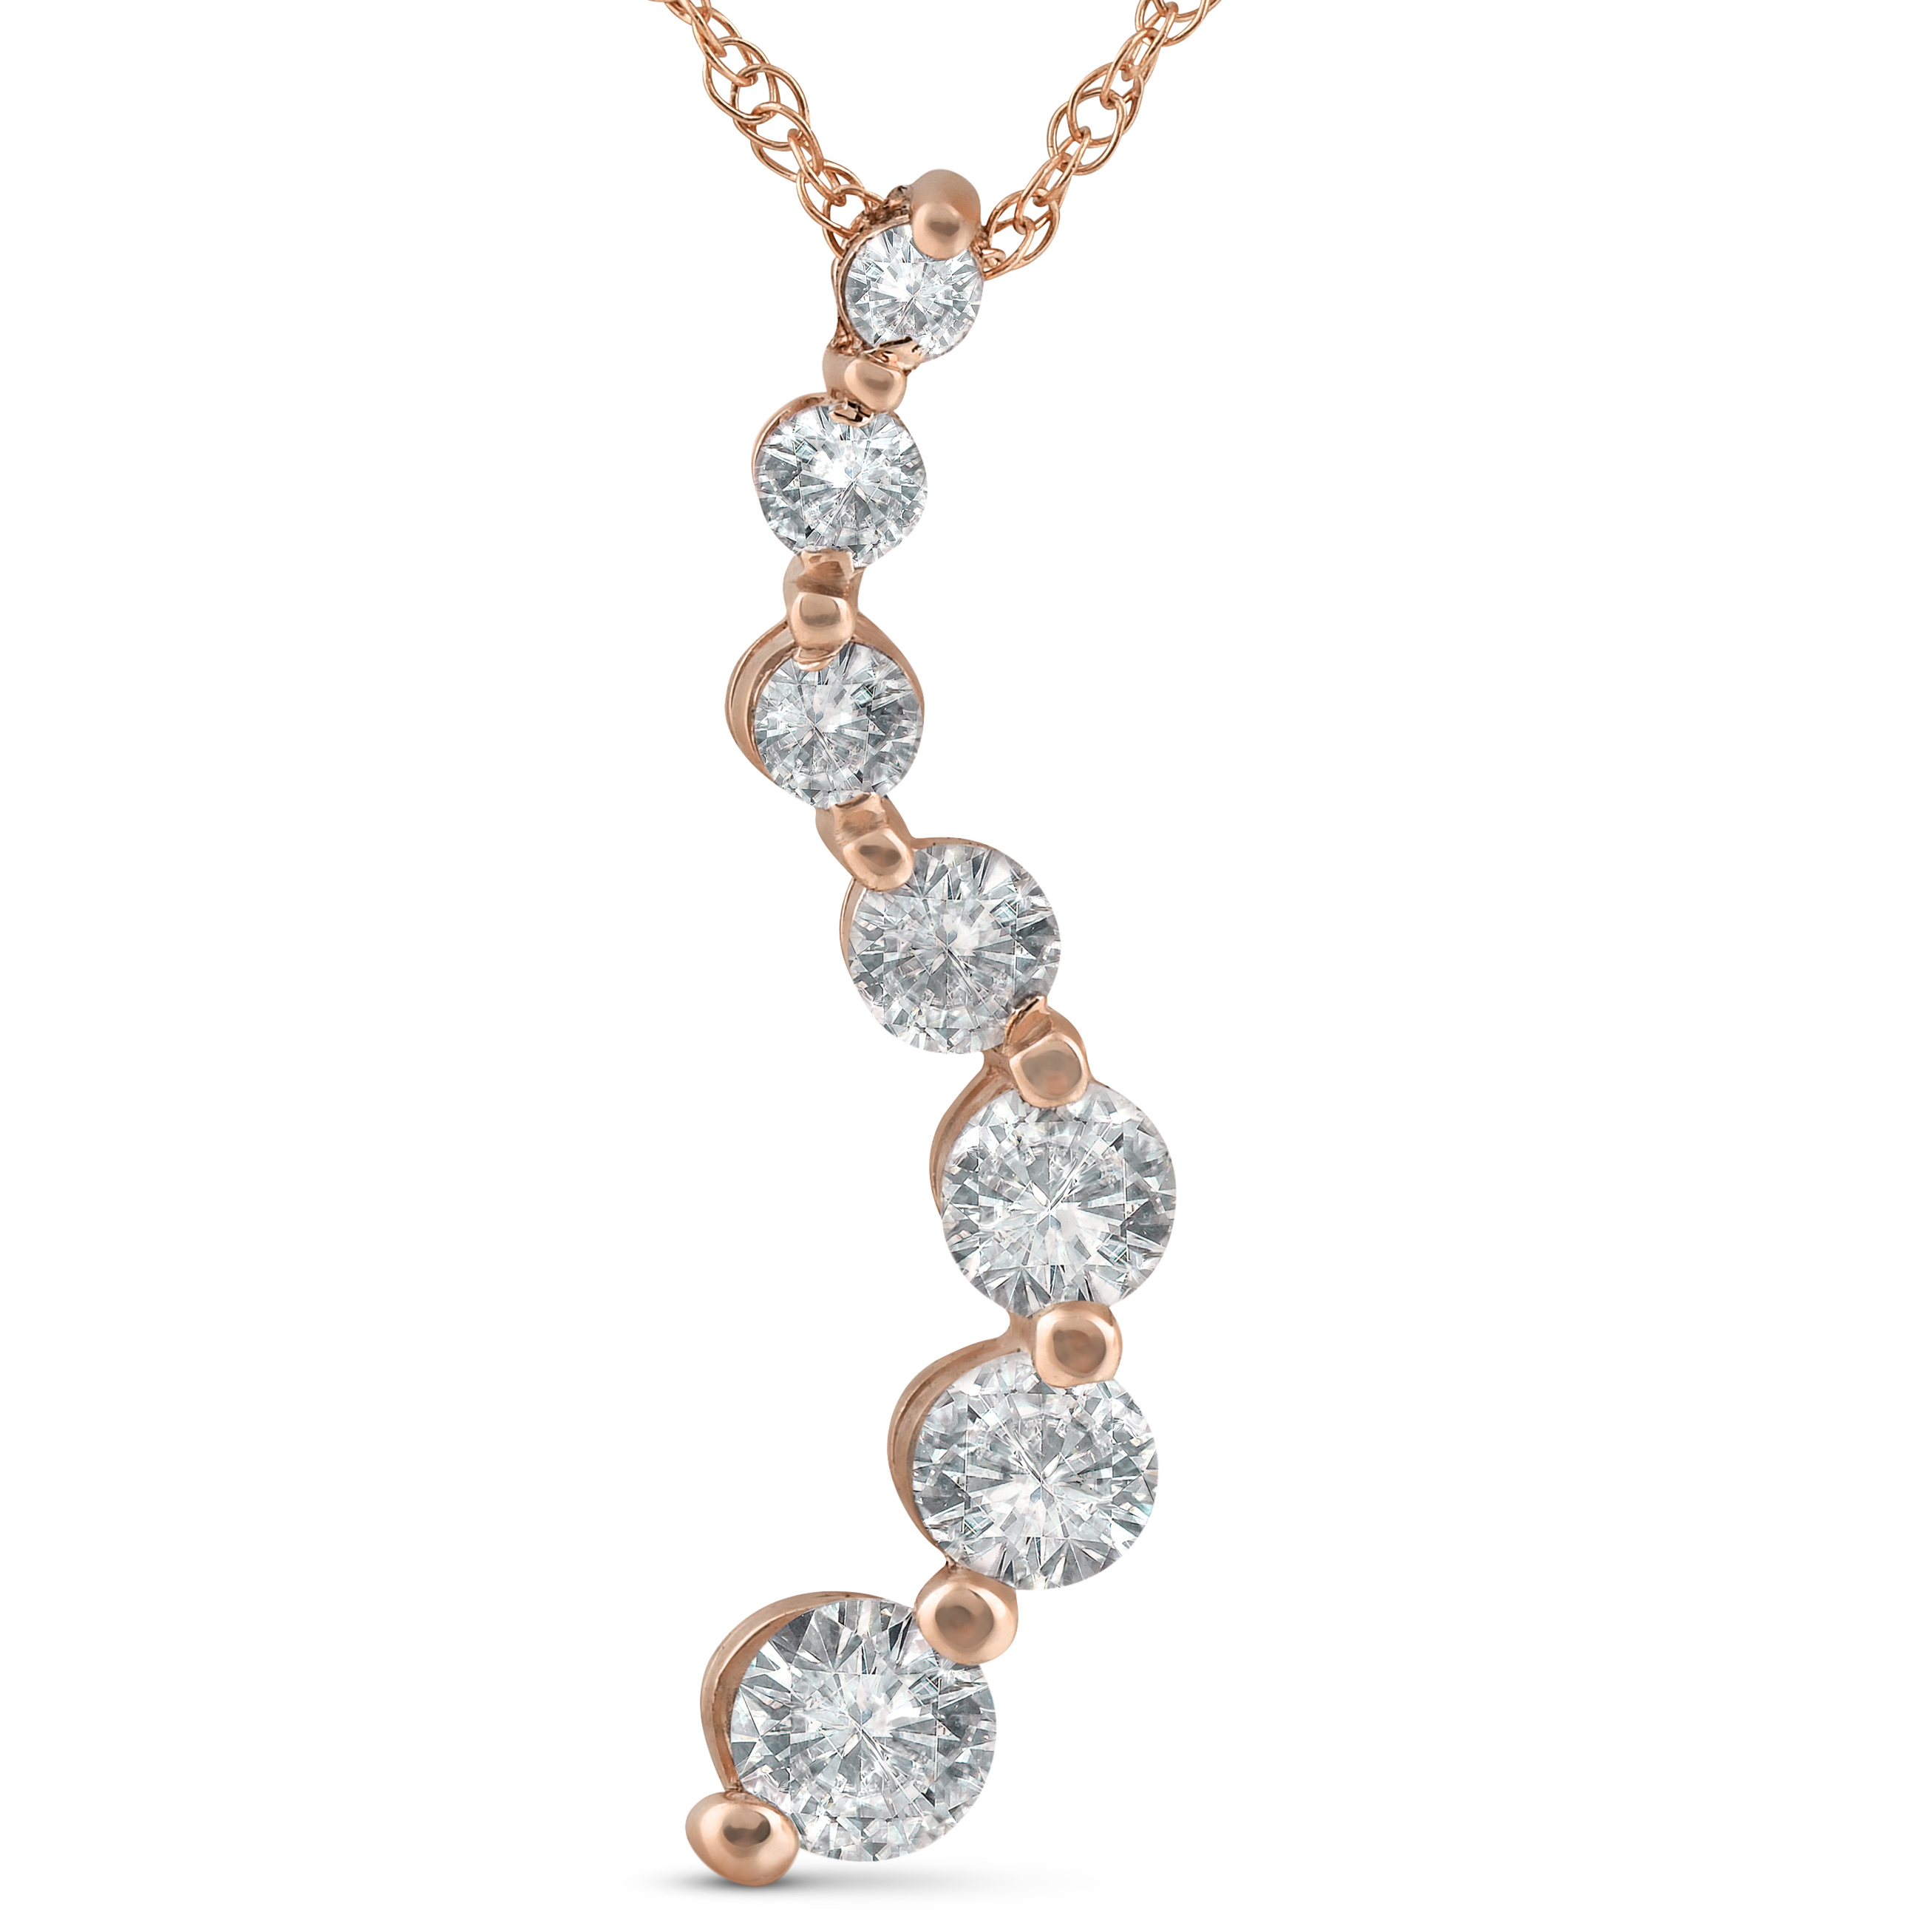 1 ct TDW Diamond Journey Pendant 14k Rose Gold - image 2 de 2